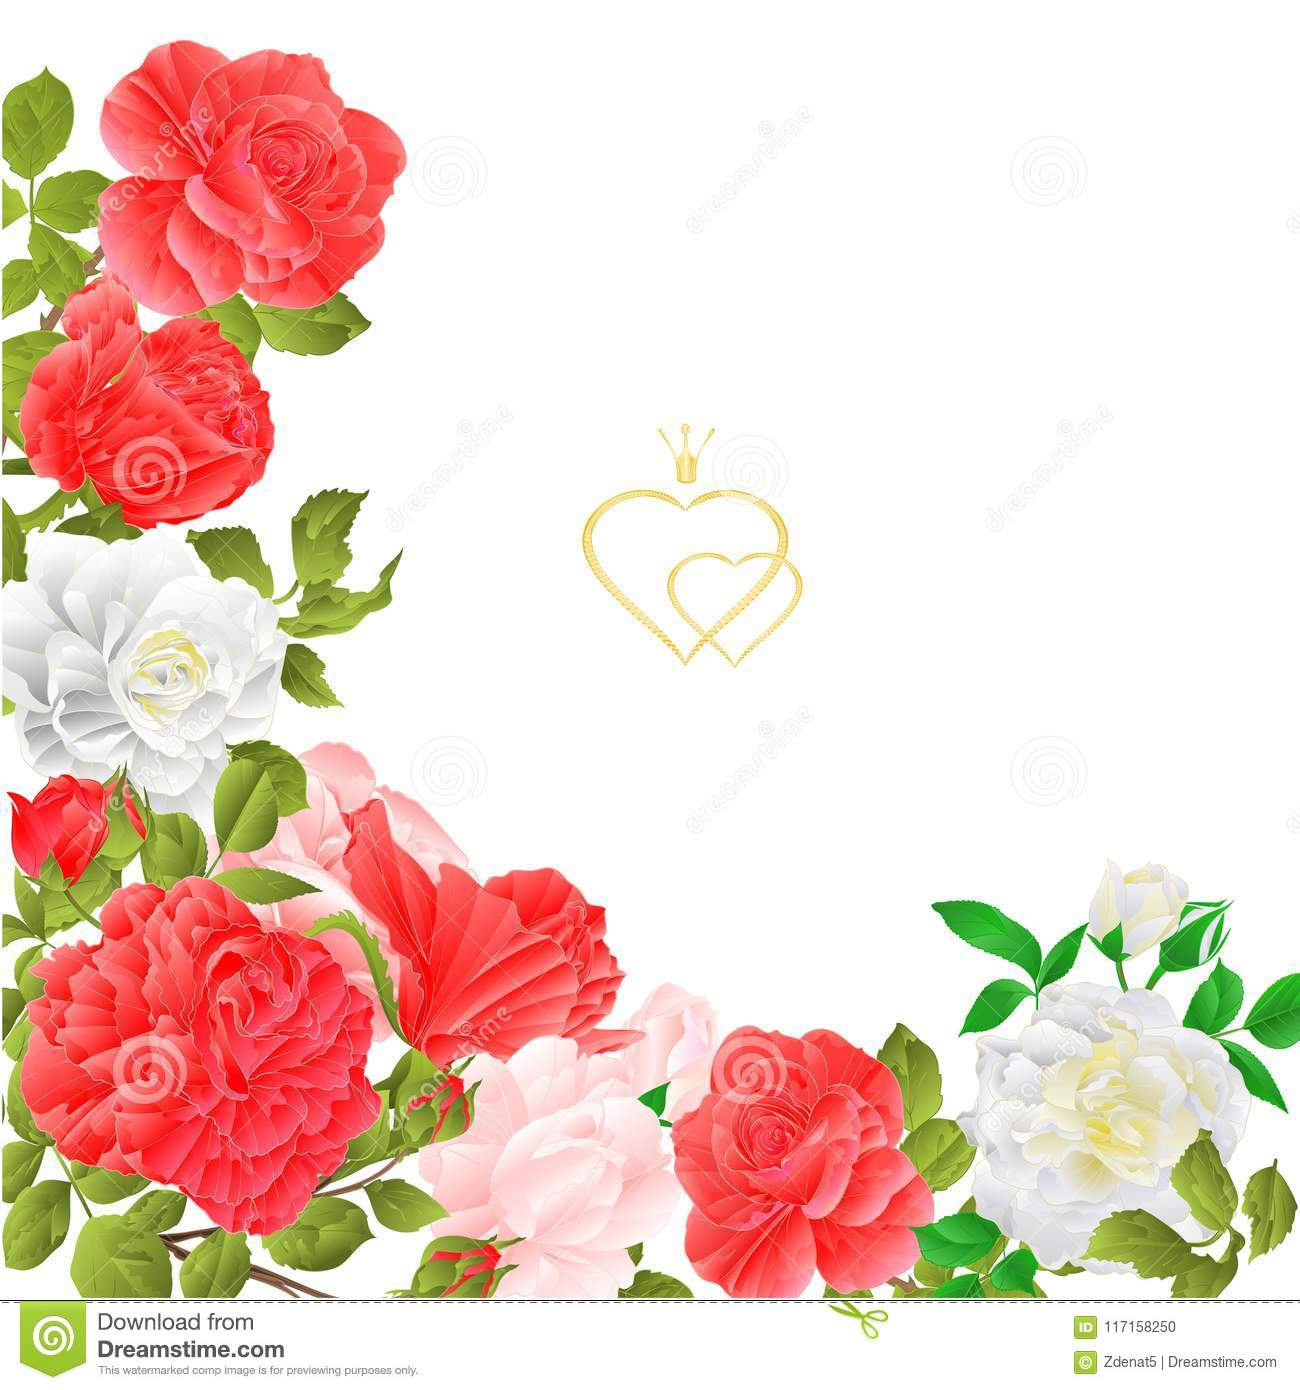 Floral Border Festive Background With Blooming Roses And Buds